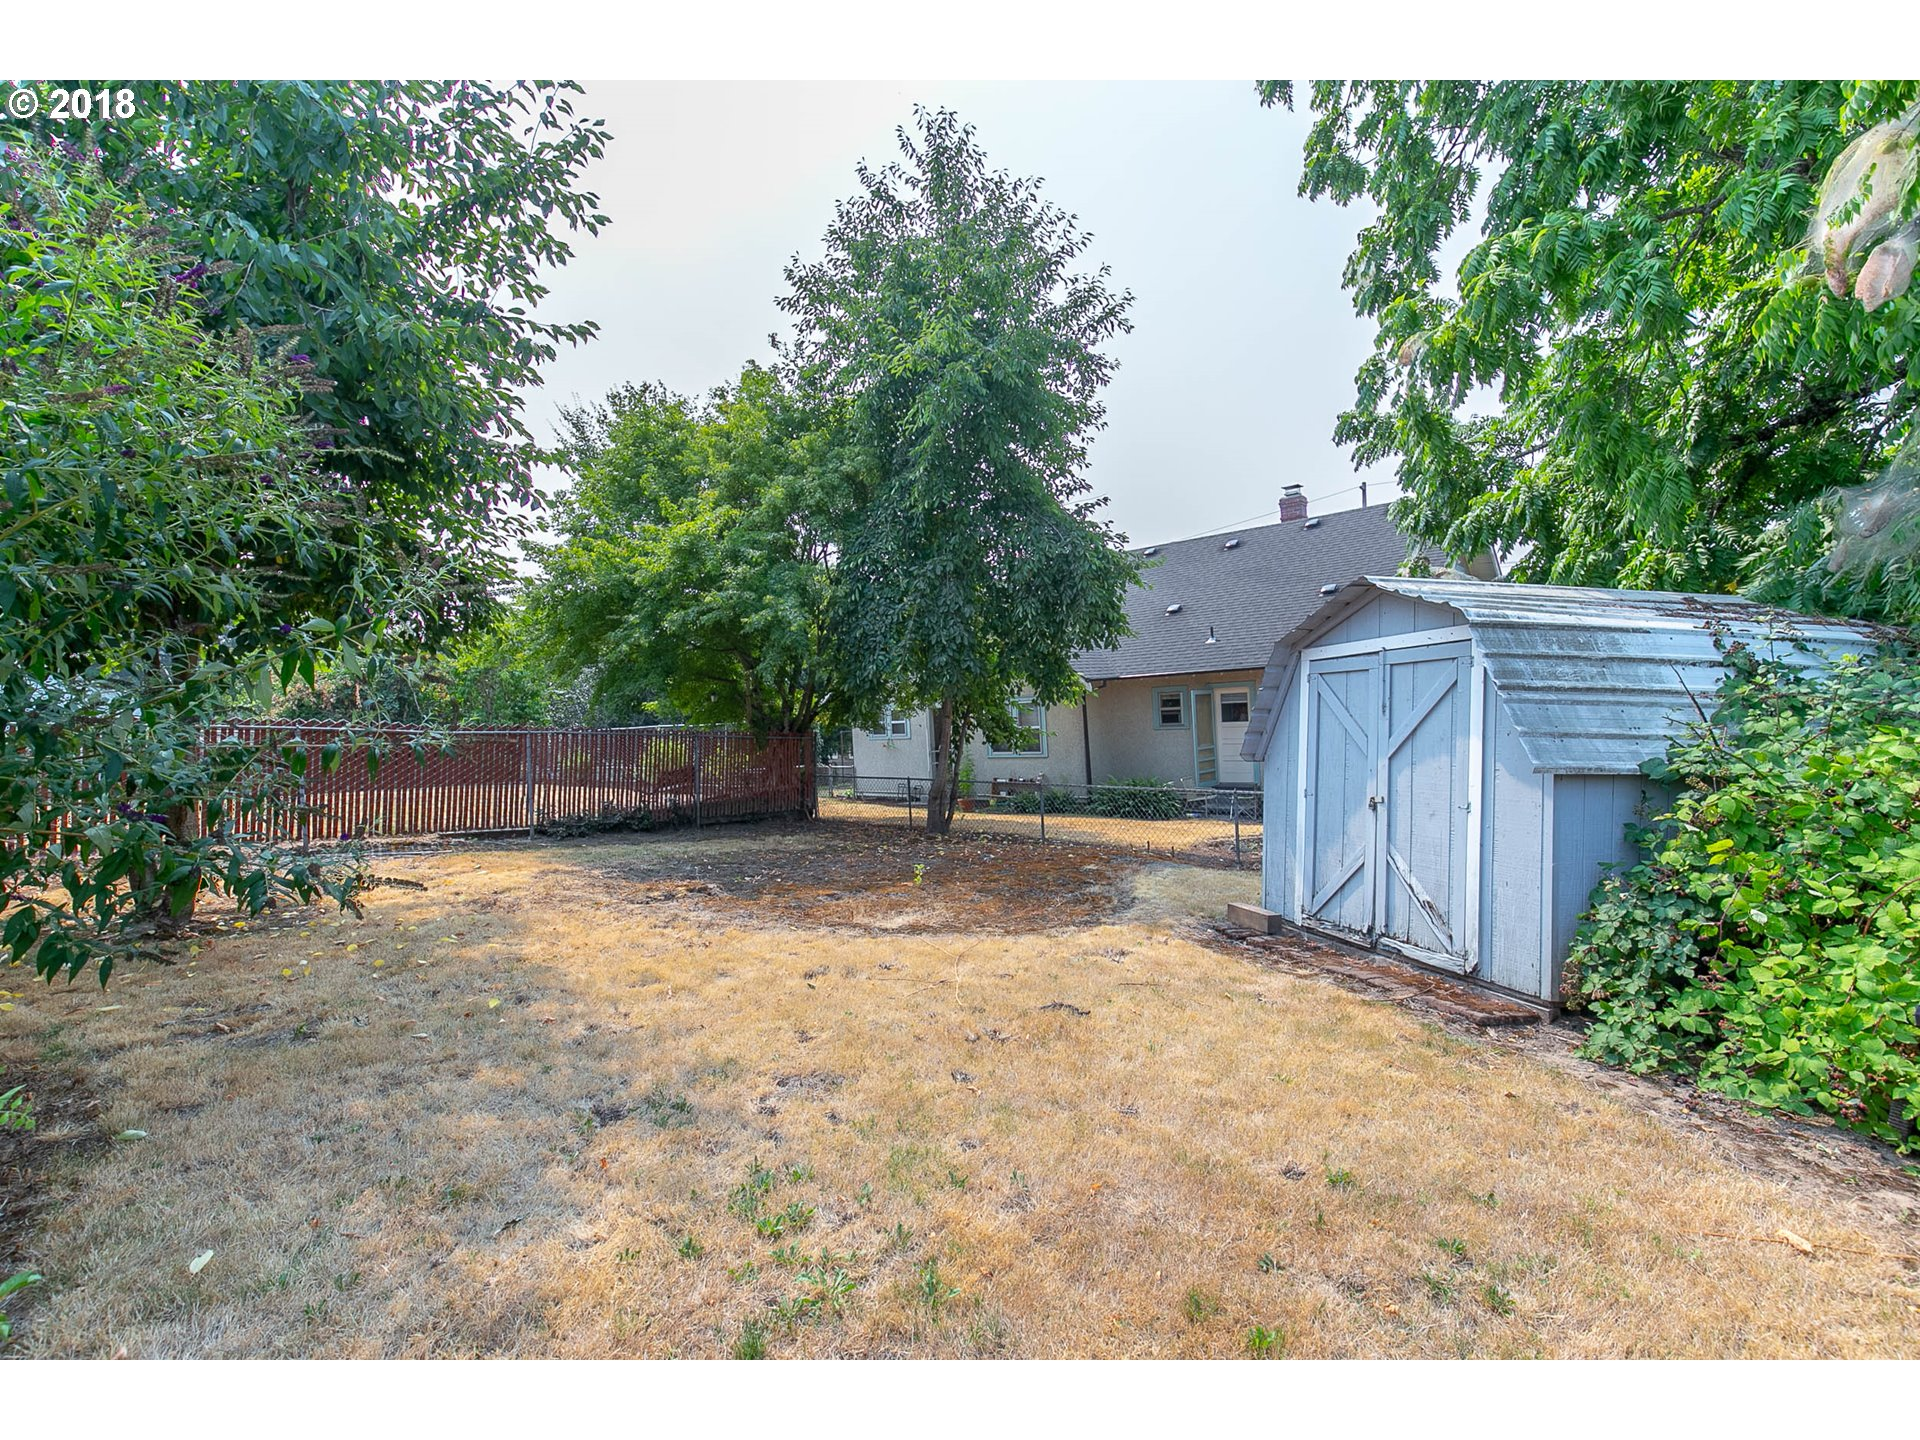 19121 HOWELL ST Gladstone, OR 97027 - MLS #: 18593845